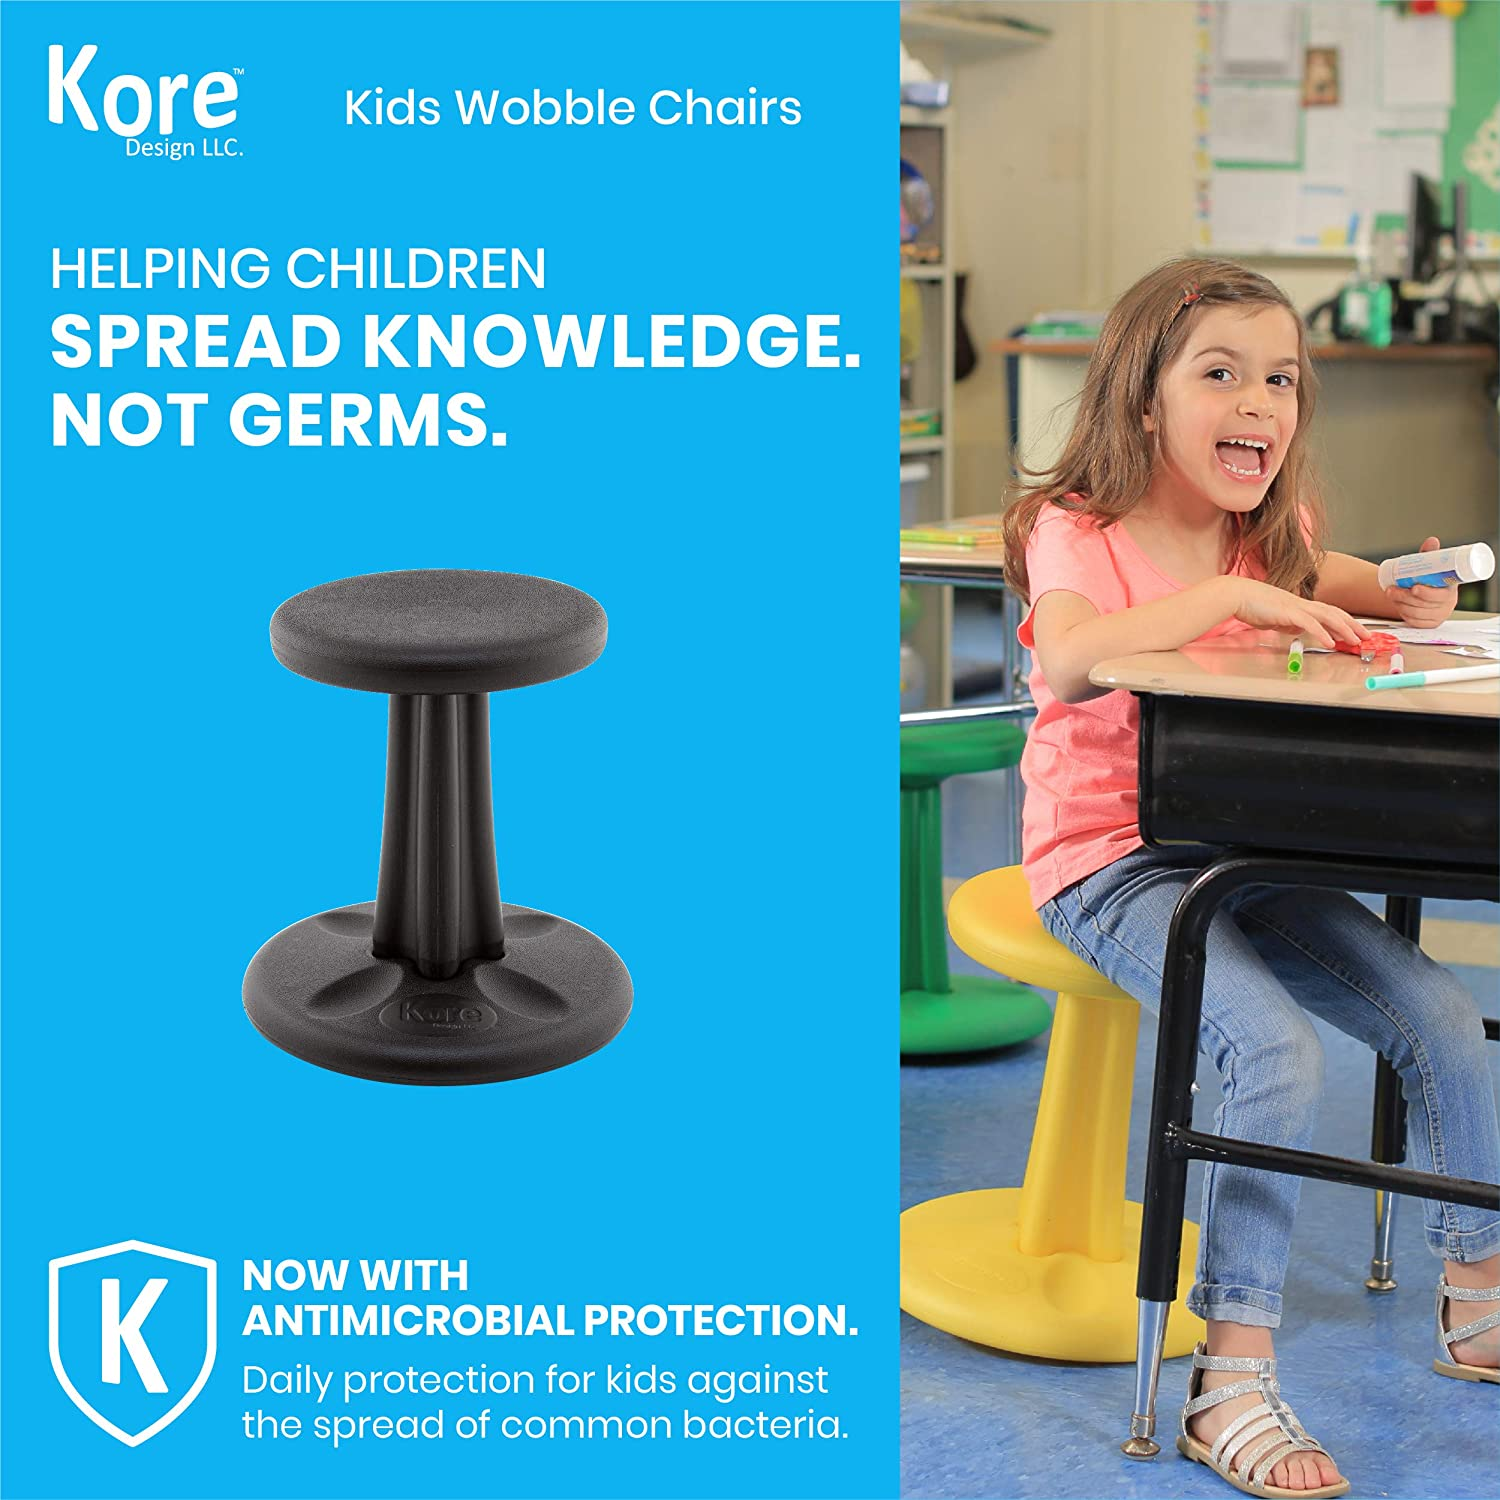 Kids Wobble Chair, 14 in (6-7 Years), Green